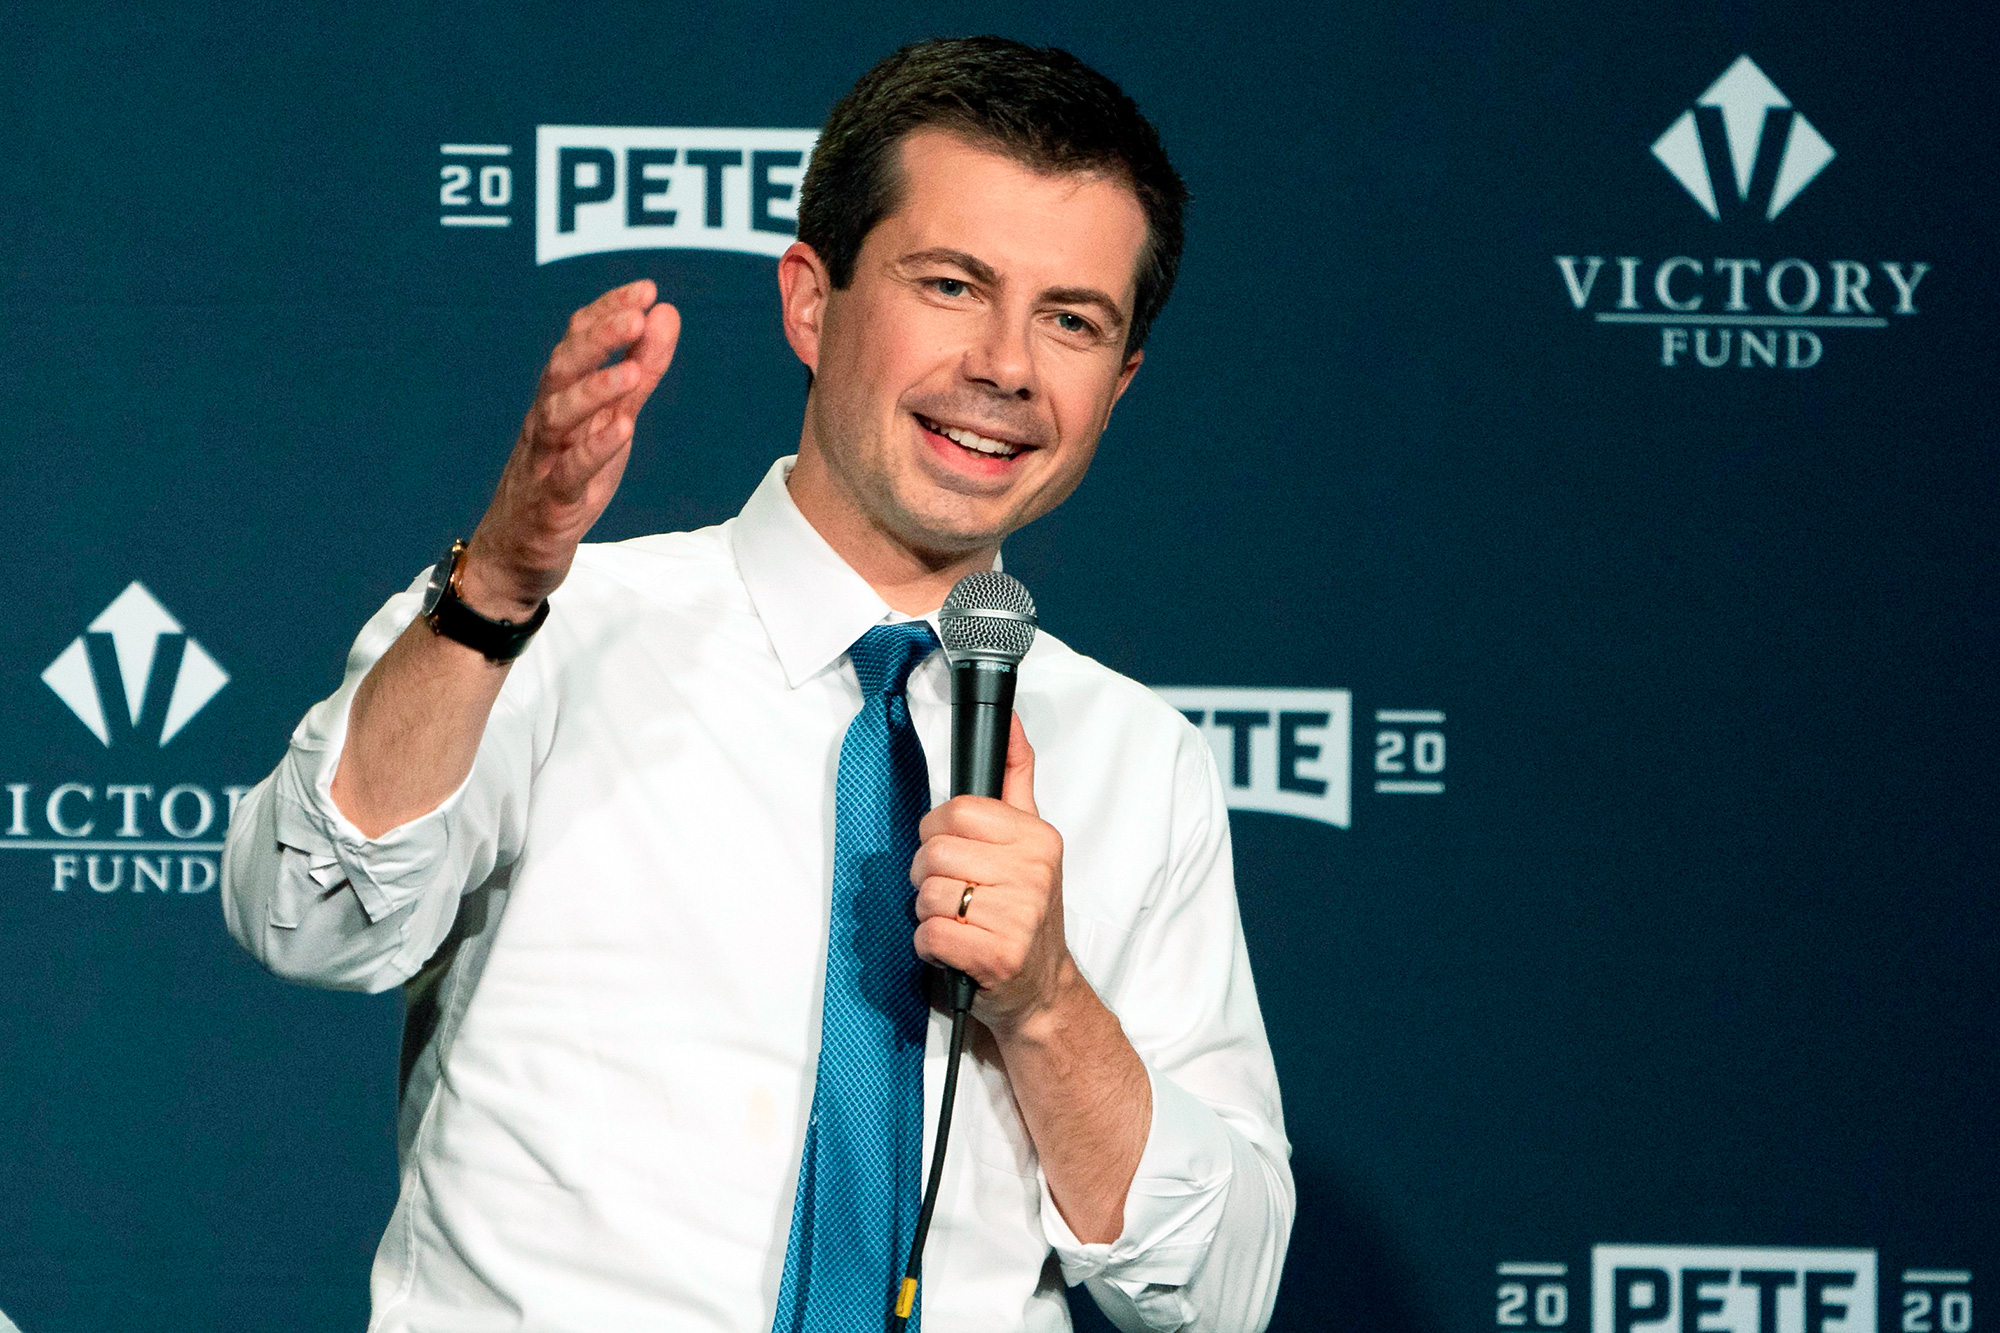 Mayor of South Bend, Indiana Pete Buttigieg speaks at an LGBTQ Victory Fund event June 28, 2019 in New York. - At the event LGBTQ Victory Fund announced that it was endorsing Buttigieg for presidentAnnise Parker, president of the Victory Fund, celebrates with South Bend's Mayor Pete Buttigieg